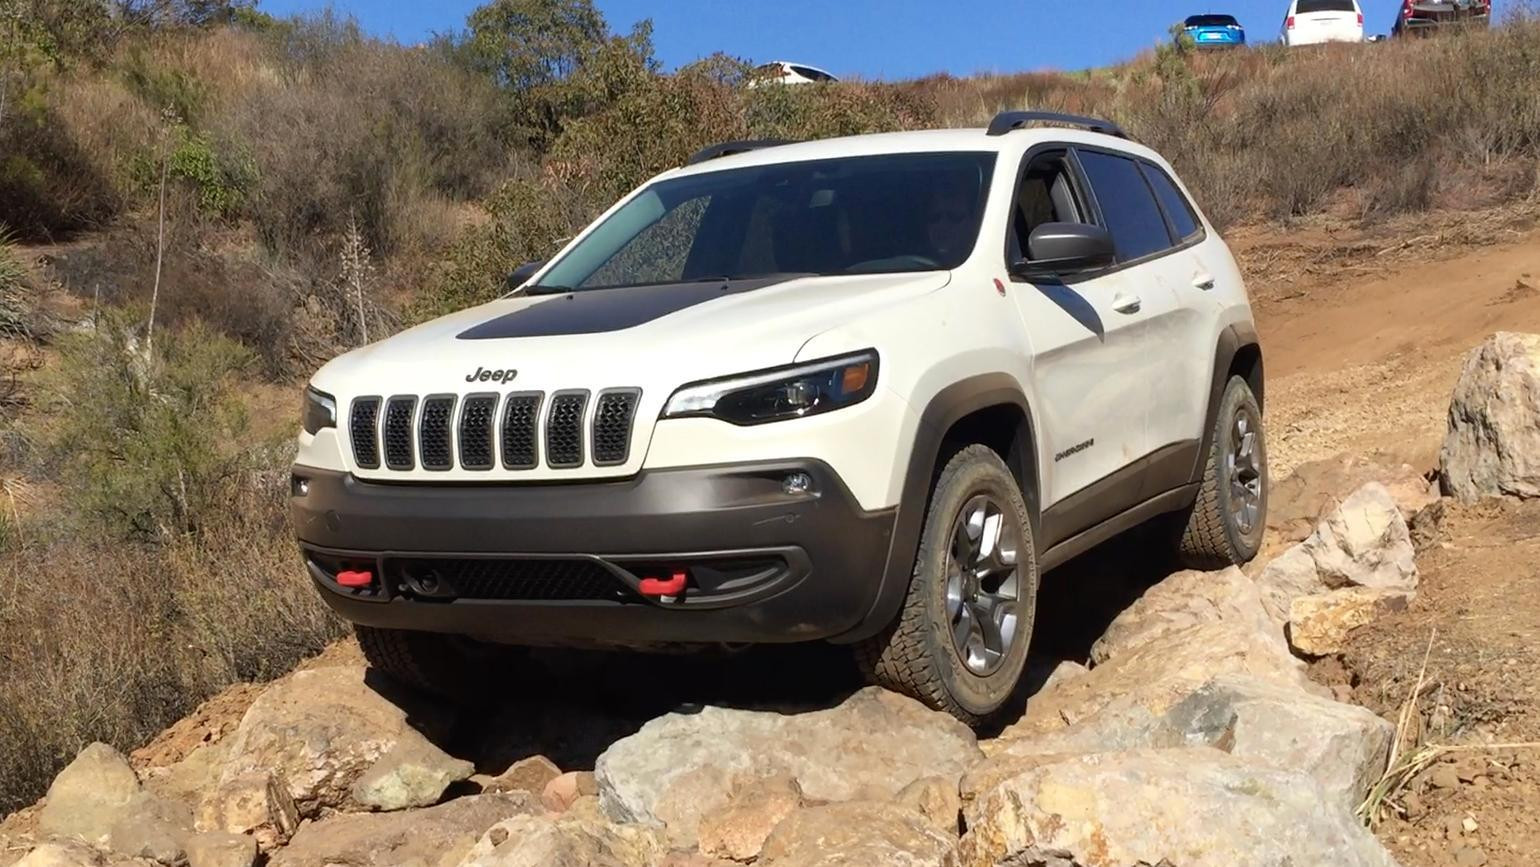 Compare 2019 Jeep Cherokee turbo 2 0L with high-horsepower small